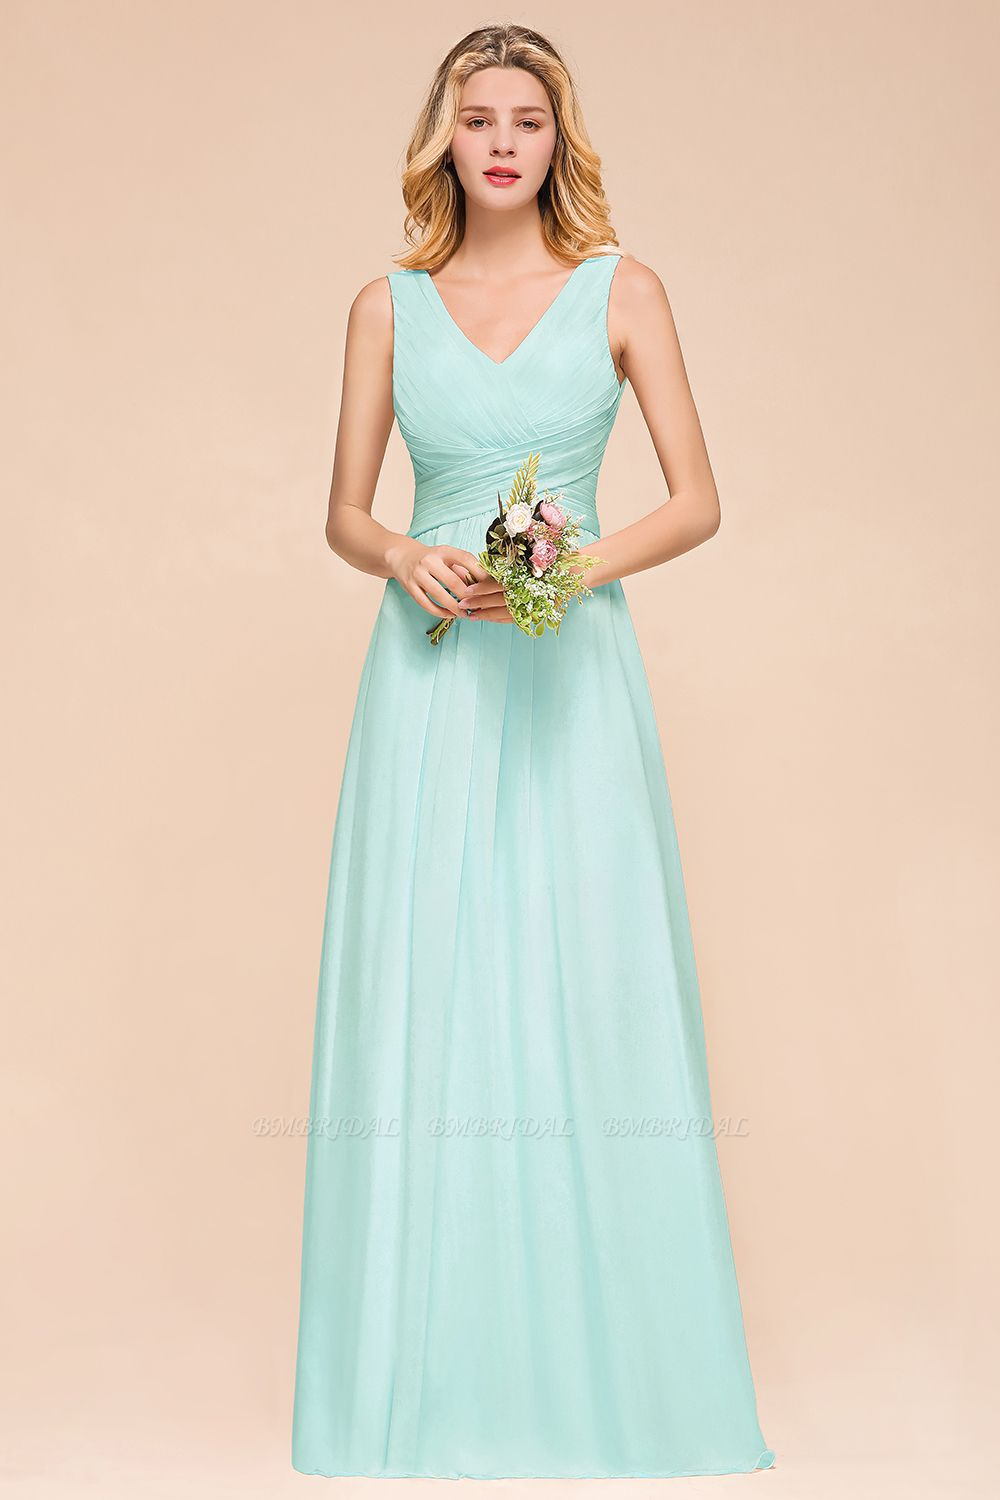 Chic V-Neck Sleeveless Mint Green Bridesmaid Dresses with Ruffle